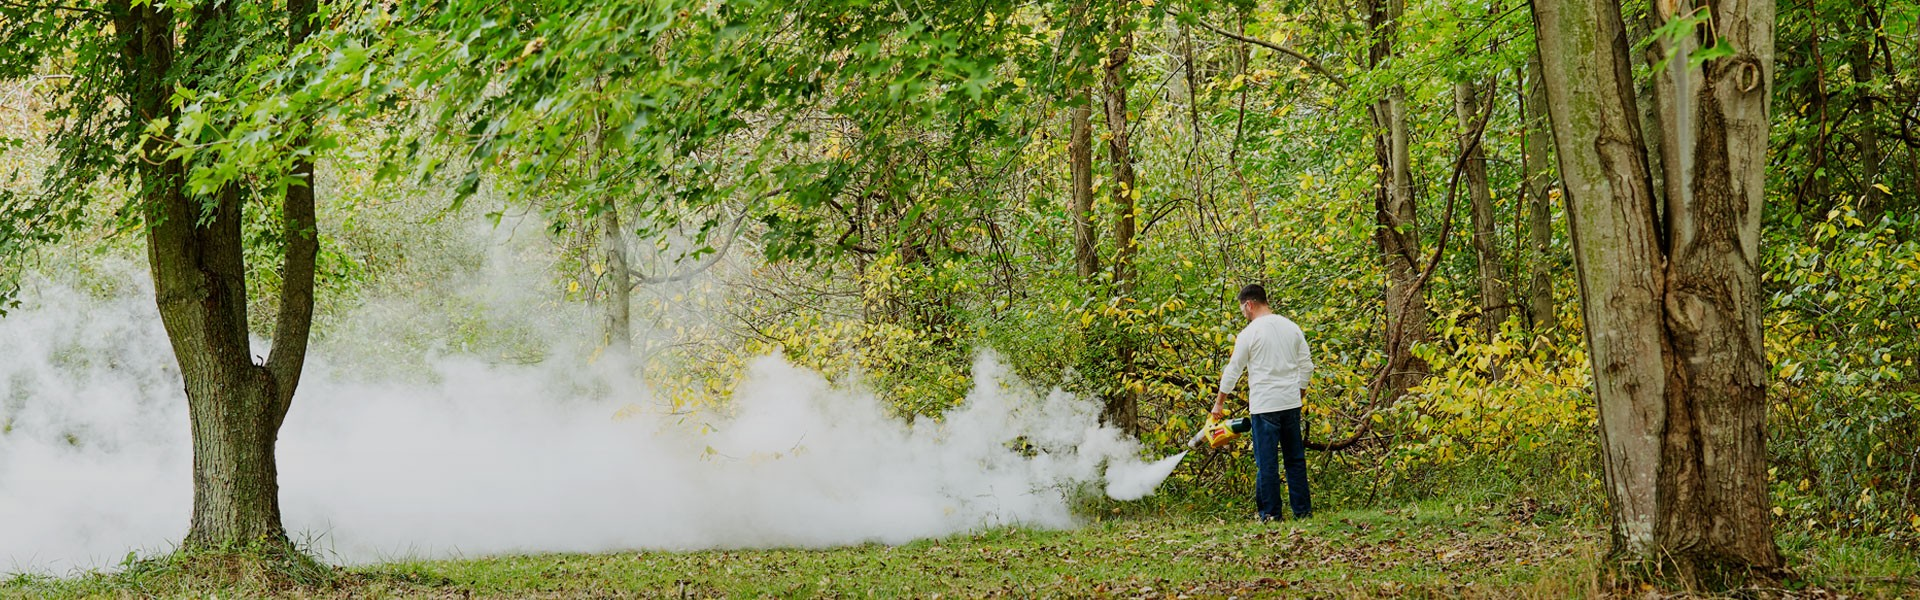 Mosquito Foggers | The Fountainhead Group